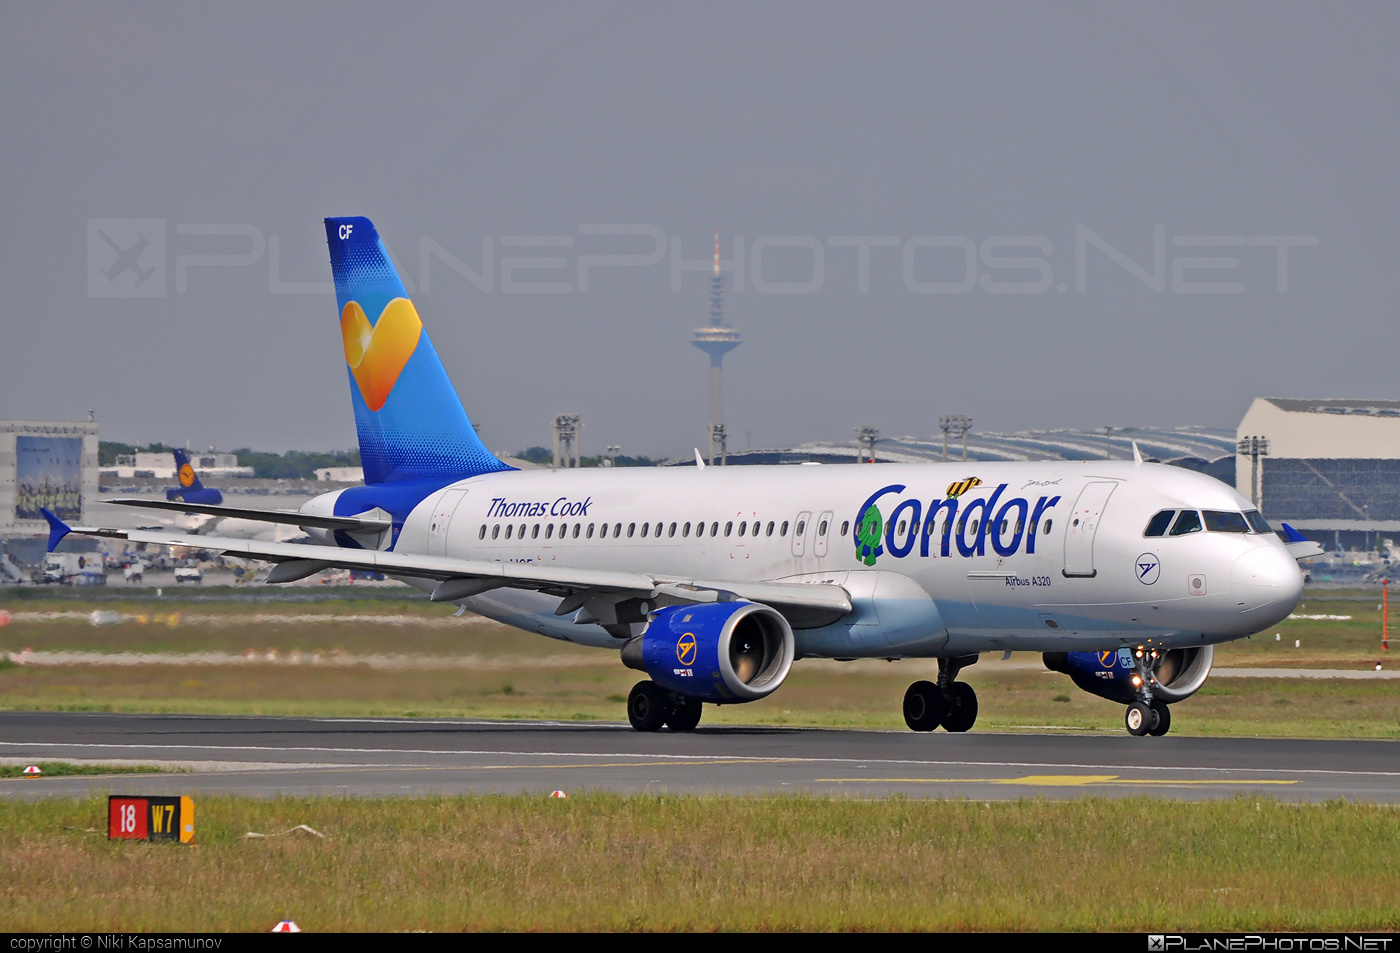 Airbus A320-212 - D-AICF operated by Condor #a320 #a320family #airbus #airbus320